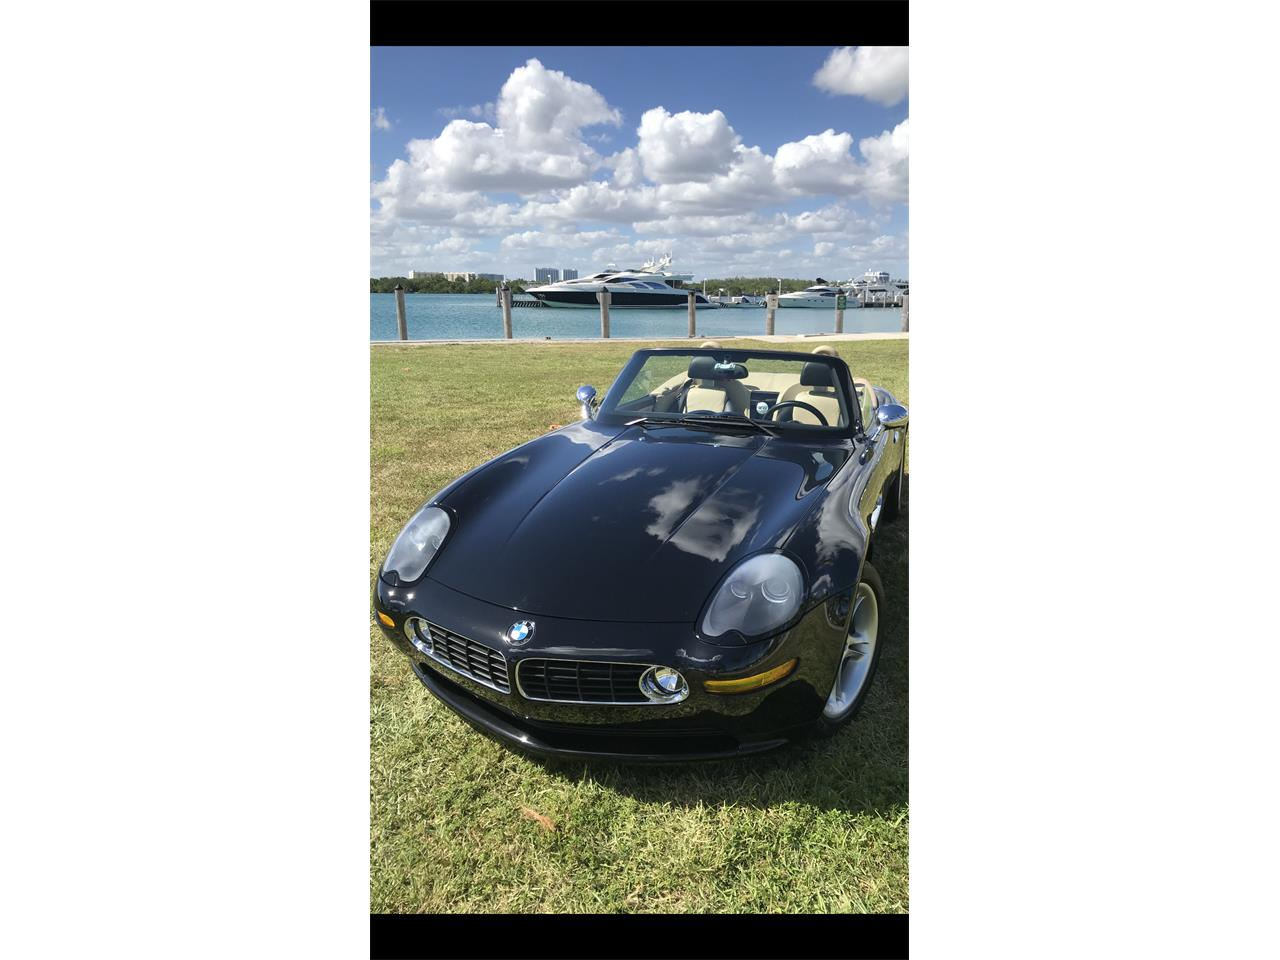 Large Picture of 2001 BMW Z8 located in Aventura  Florida - $174,750.00 Offered by a Private Seller - OV1C